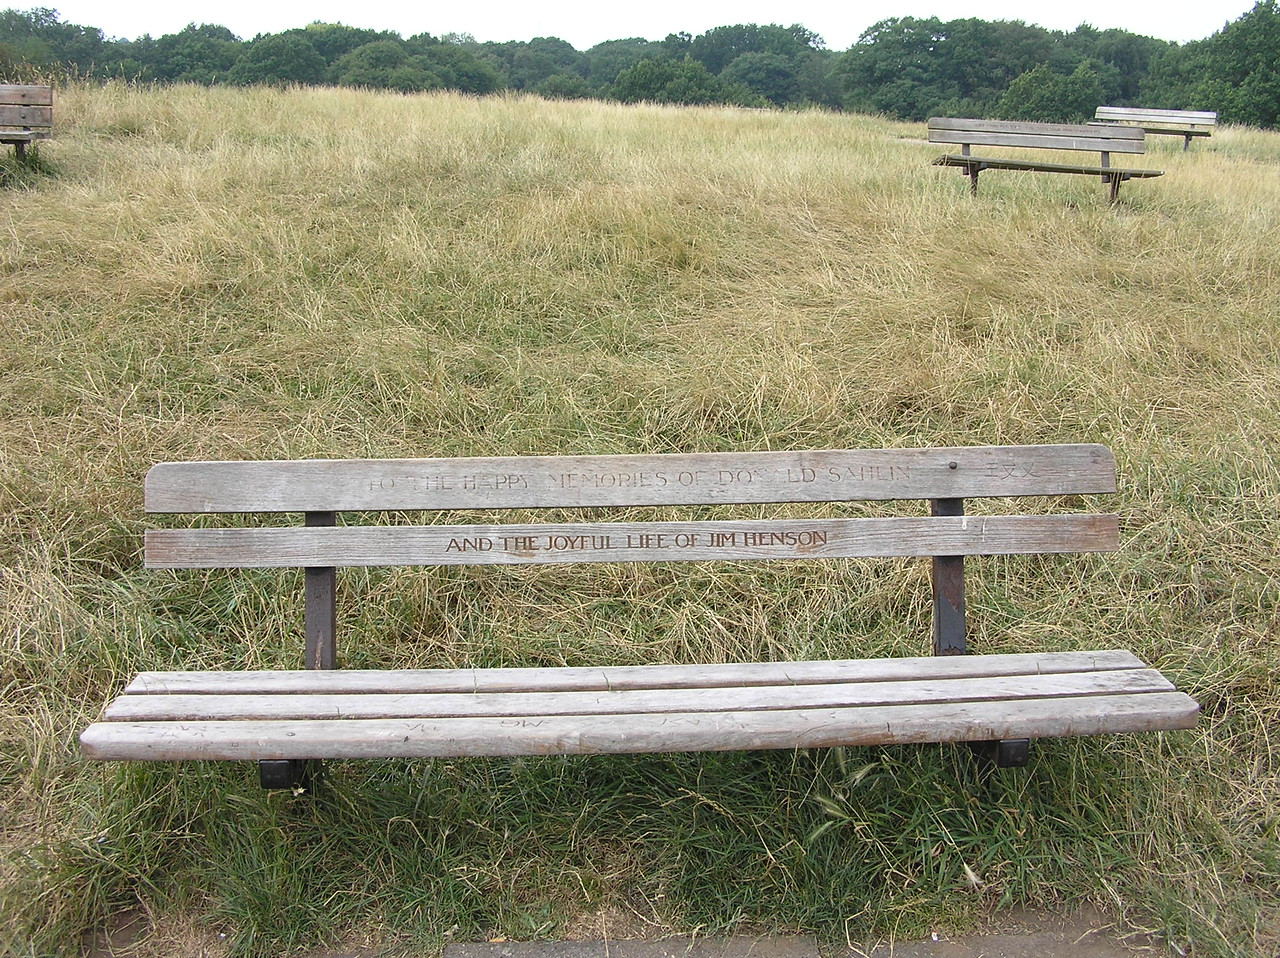 Don Sahlin started working with Jim Henson around 1962 and soon became Jim's main designer and puppet builder. When Don died in 1978, Jim had this bench inscripted in his honor, on Don's favorite spot in Hampstead Heath. The bench was also dedicated to Jim after his death in 1990.<br /> <br /> TO THE HAPPY MEMORIES OF DONALD SAHLIN<br /> AND THE JOYFUL LIFE OF JIM HENSON